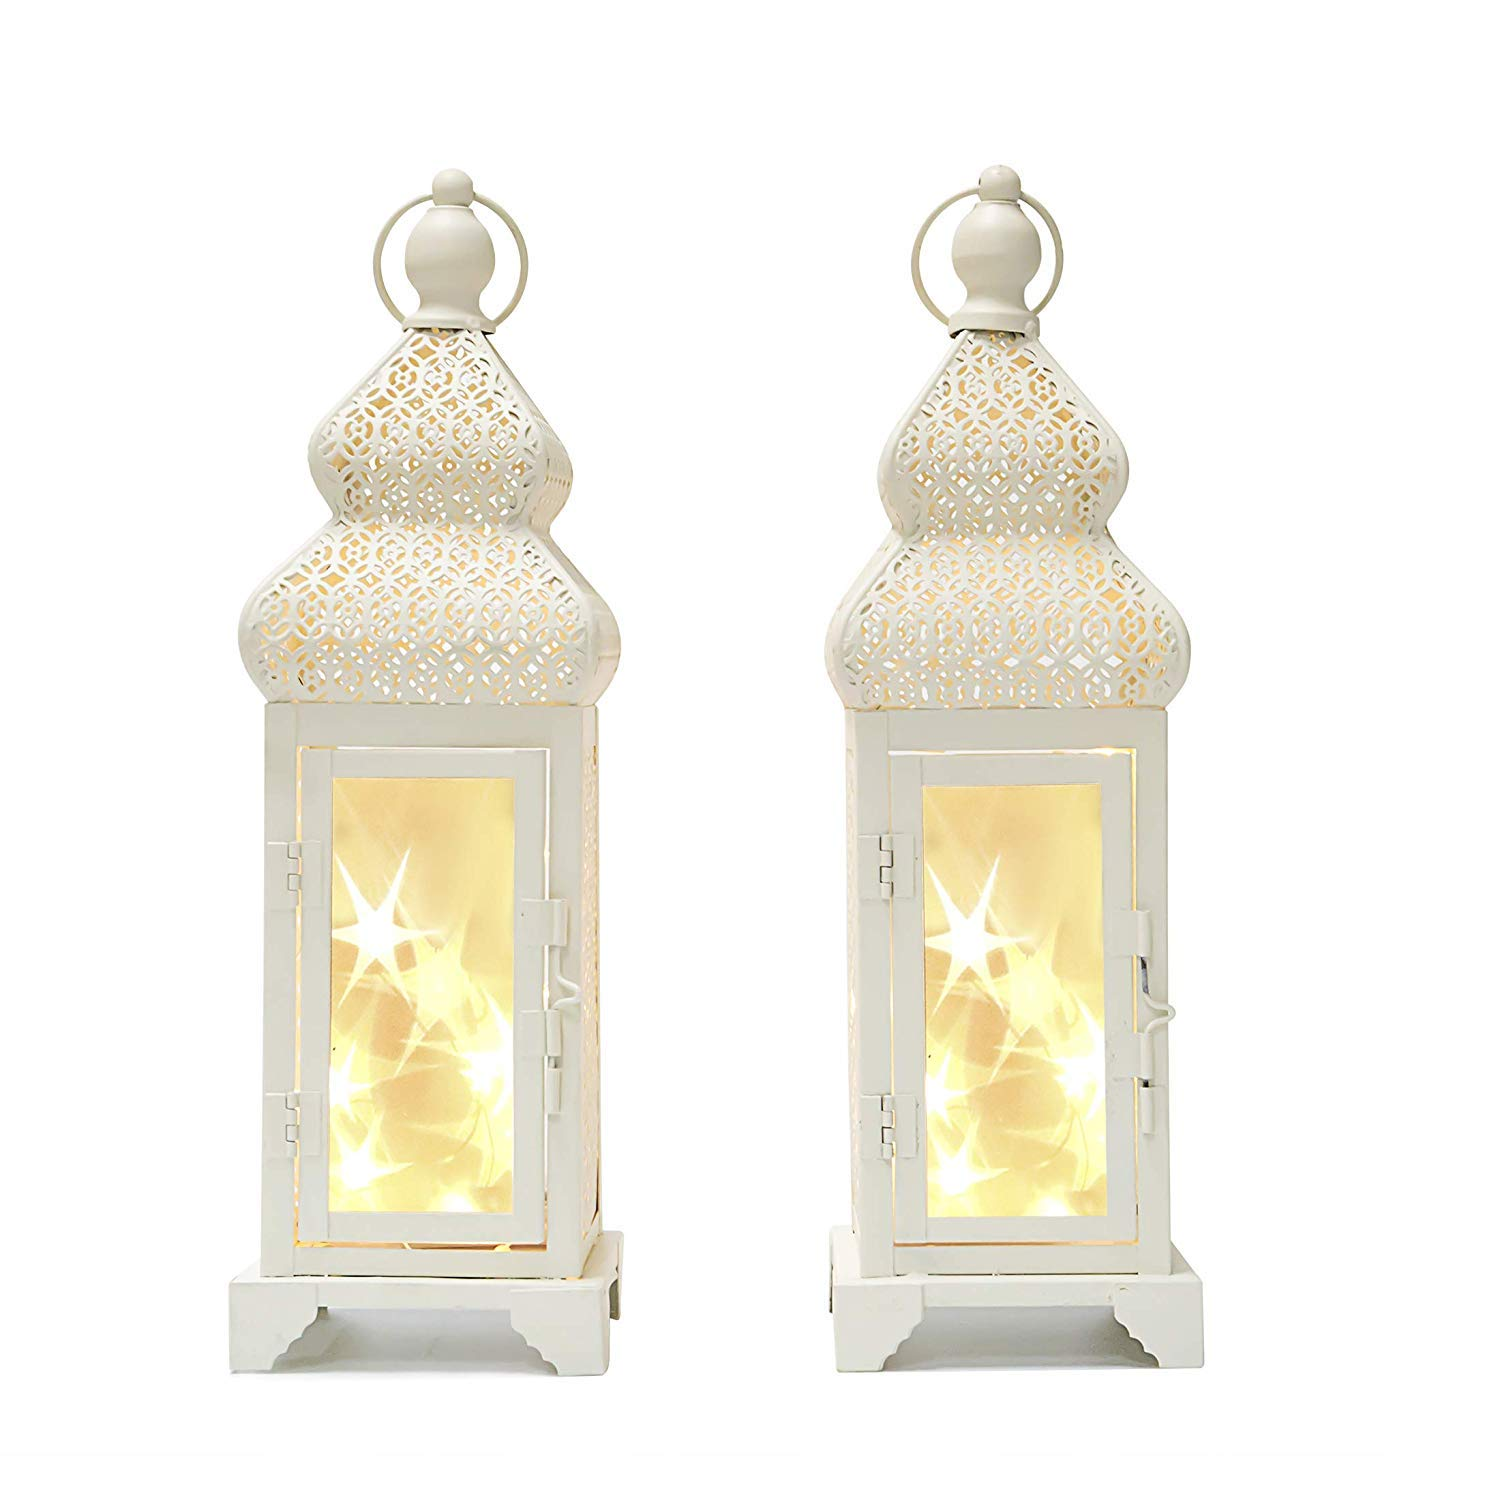 decanit 14'' Tall White Color Metal Lantern with 15 Led String Lights - with Star Reflection for Indoor Outdoor Use (Beige, 2pc 14'')